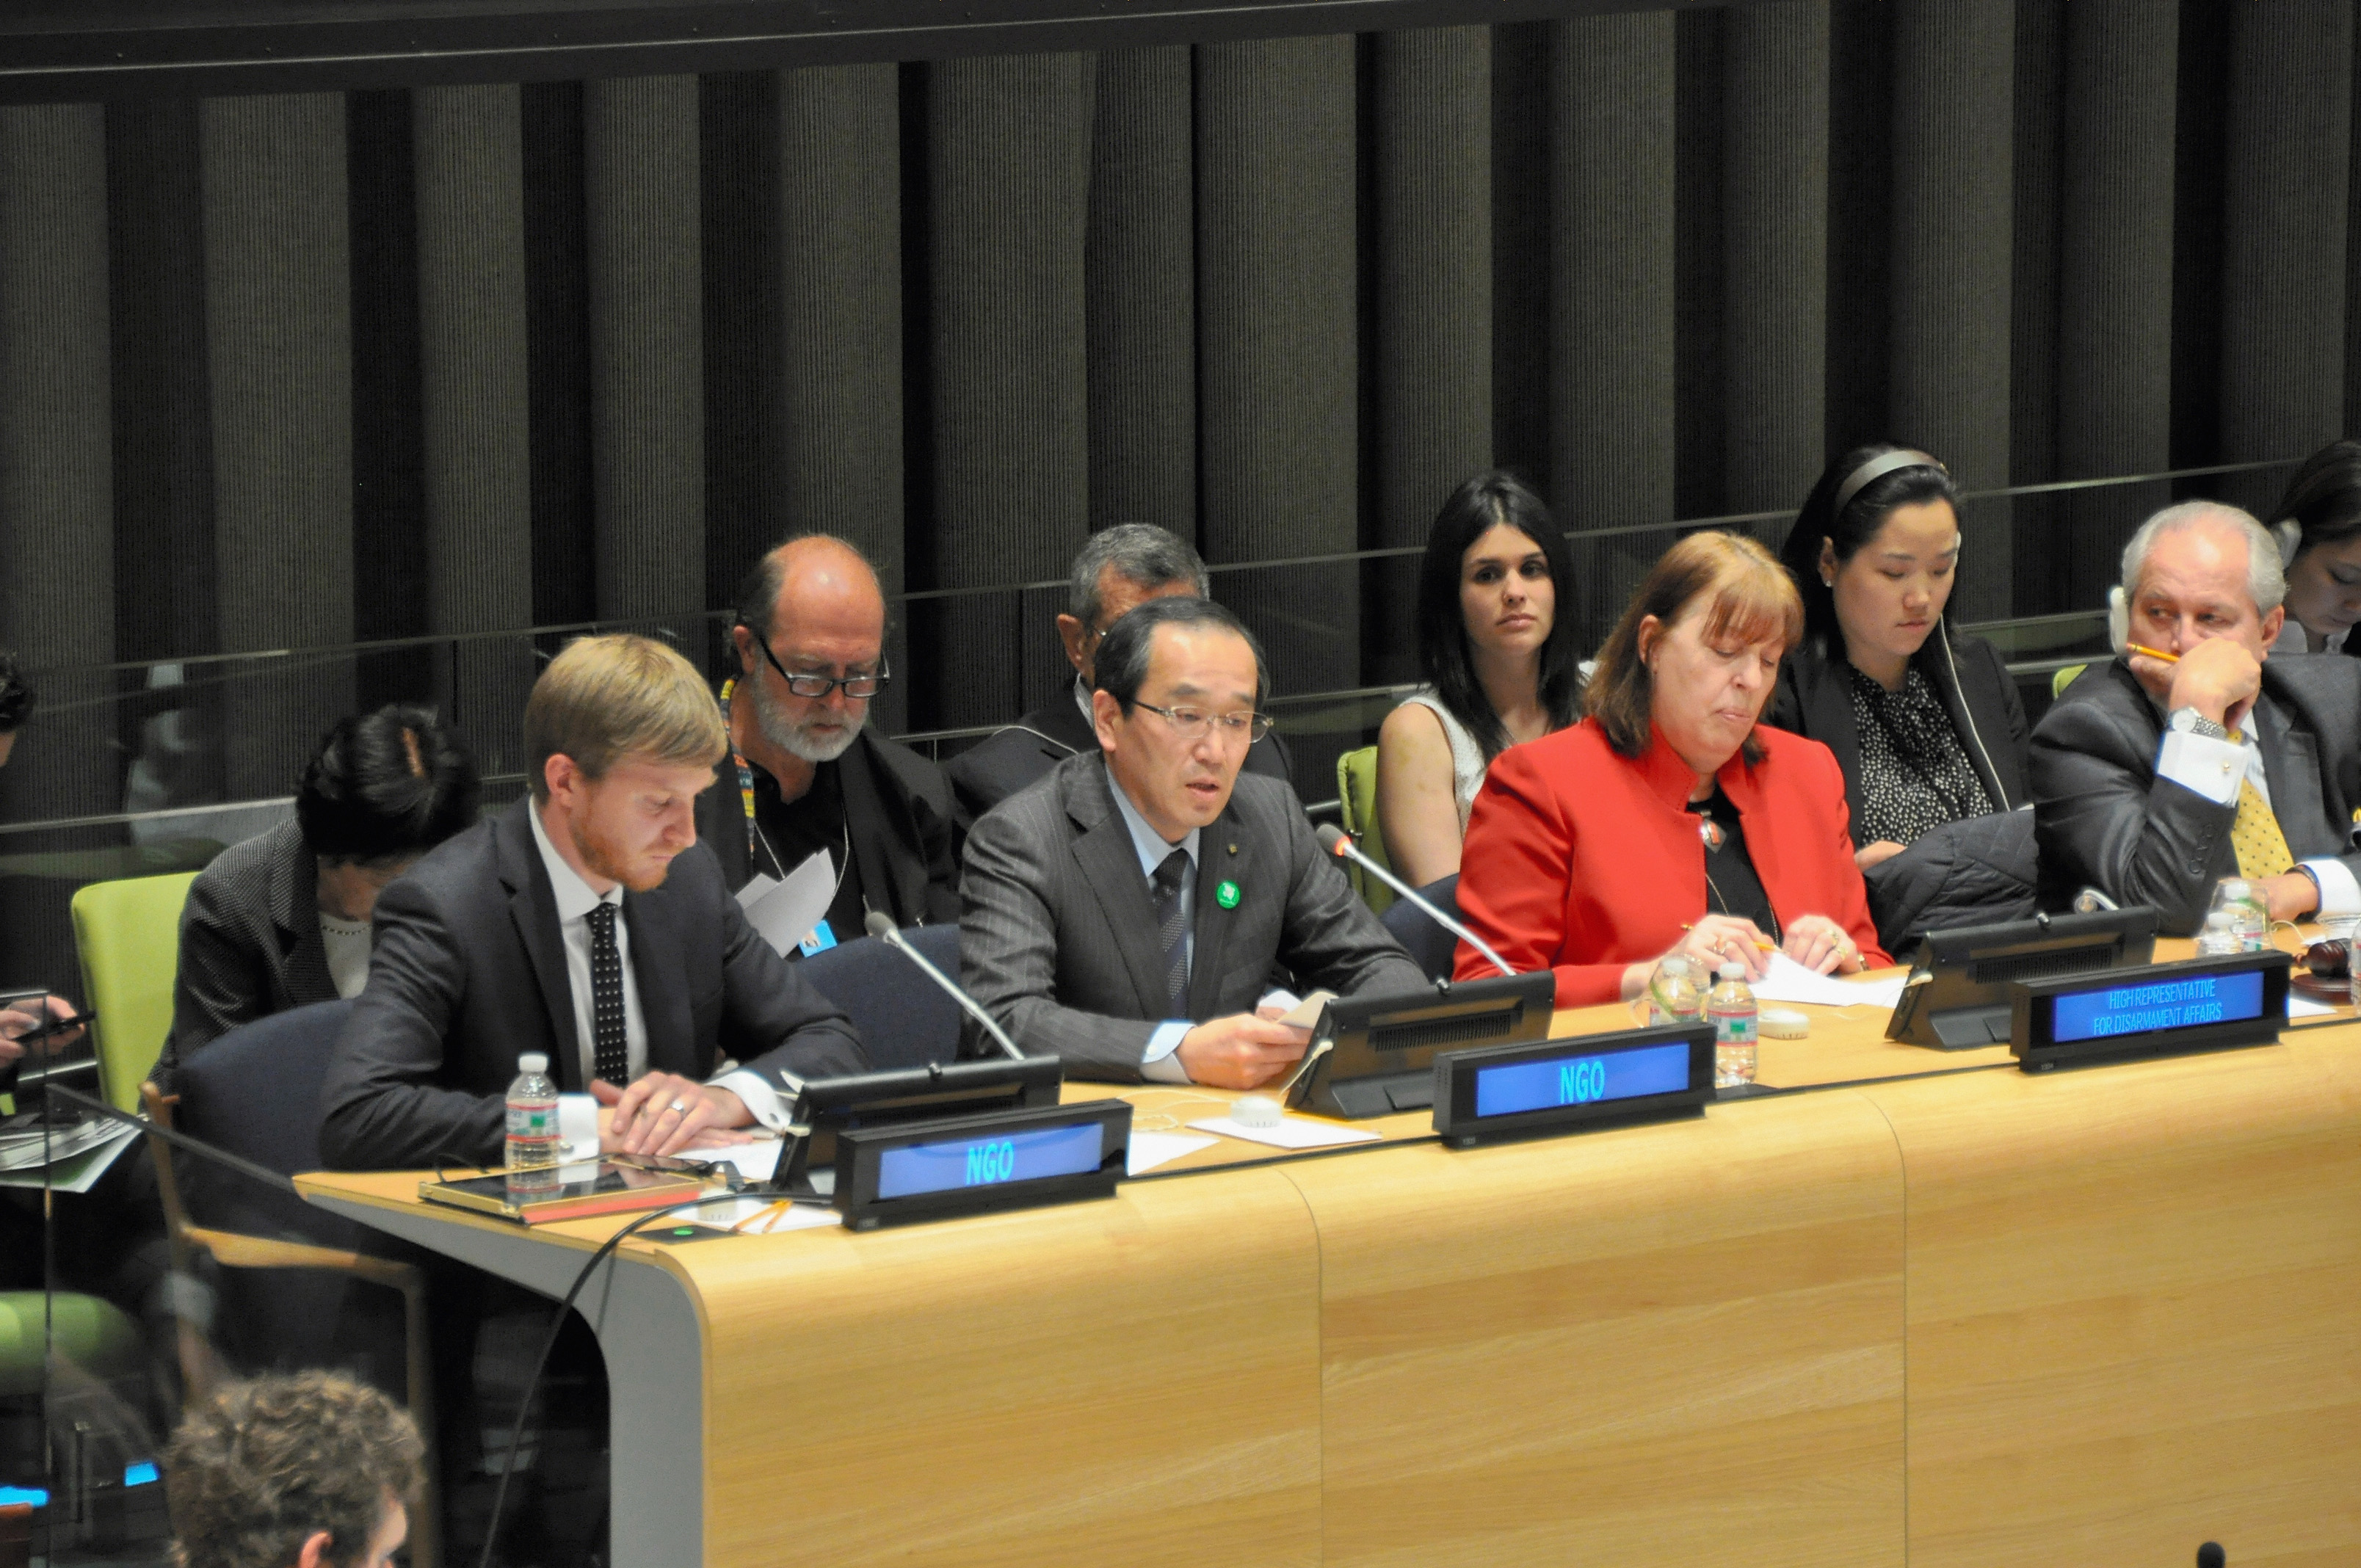 Hiroshima Mayor Kazumi Matsui (C) speaks during the third session of the Preparatory Committee for the 2015 Review Conference of the Parties to the Treaty on the Non-Proliferation of Nuclear Weapons at the U.N. headquarters on April 29, 2014 in New York City.